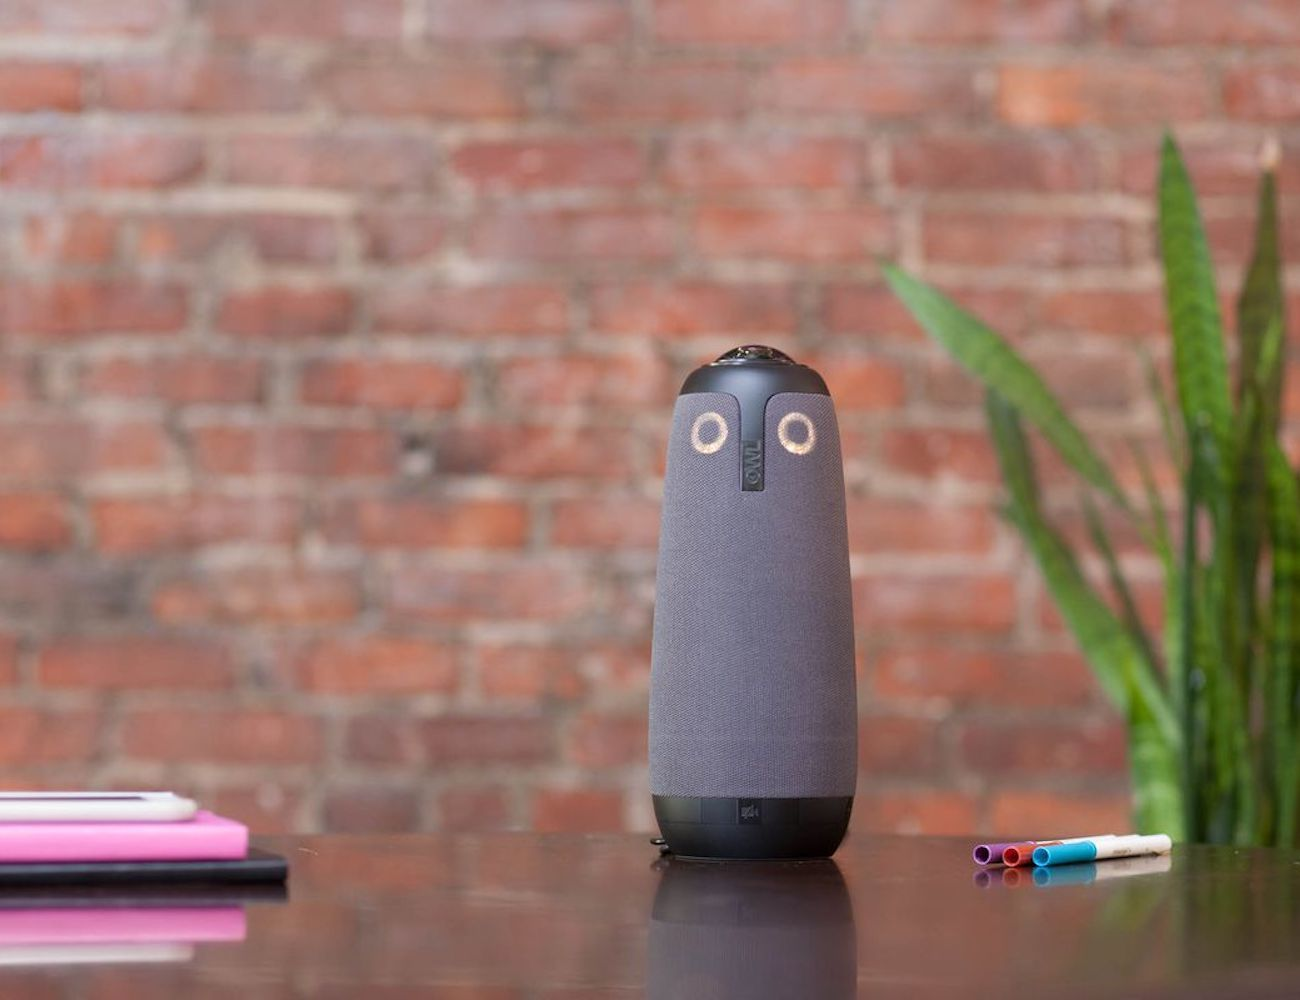 Meeting-Owl-Robotic-Video-Conference-Camera-1.jpg